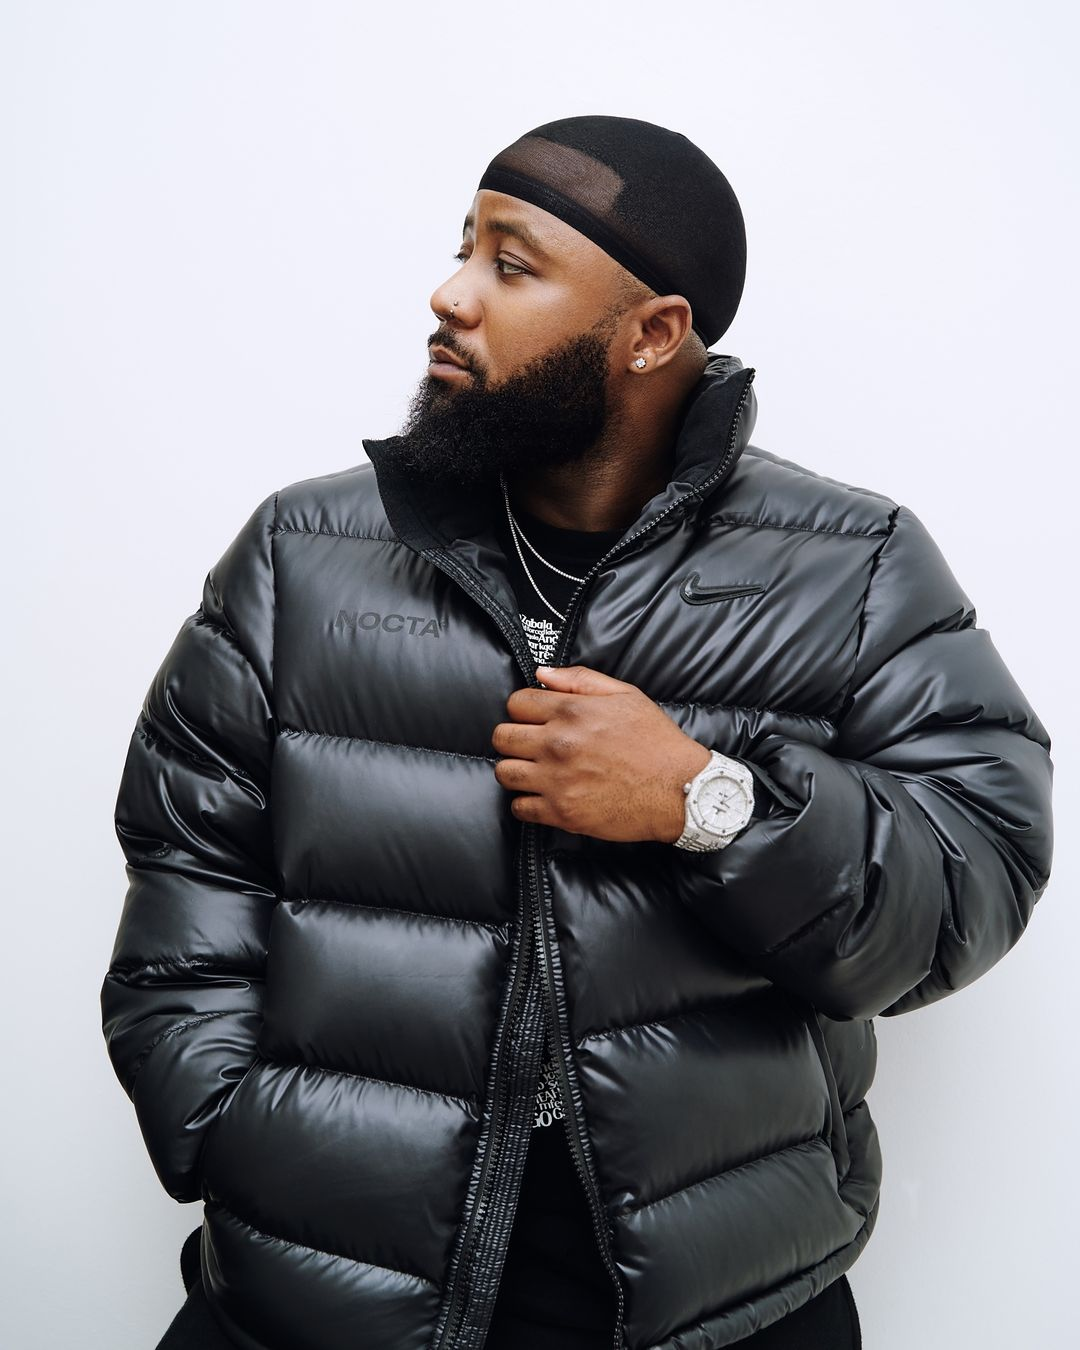 Cassper Nyovest announce date for his boxing match